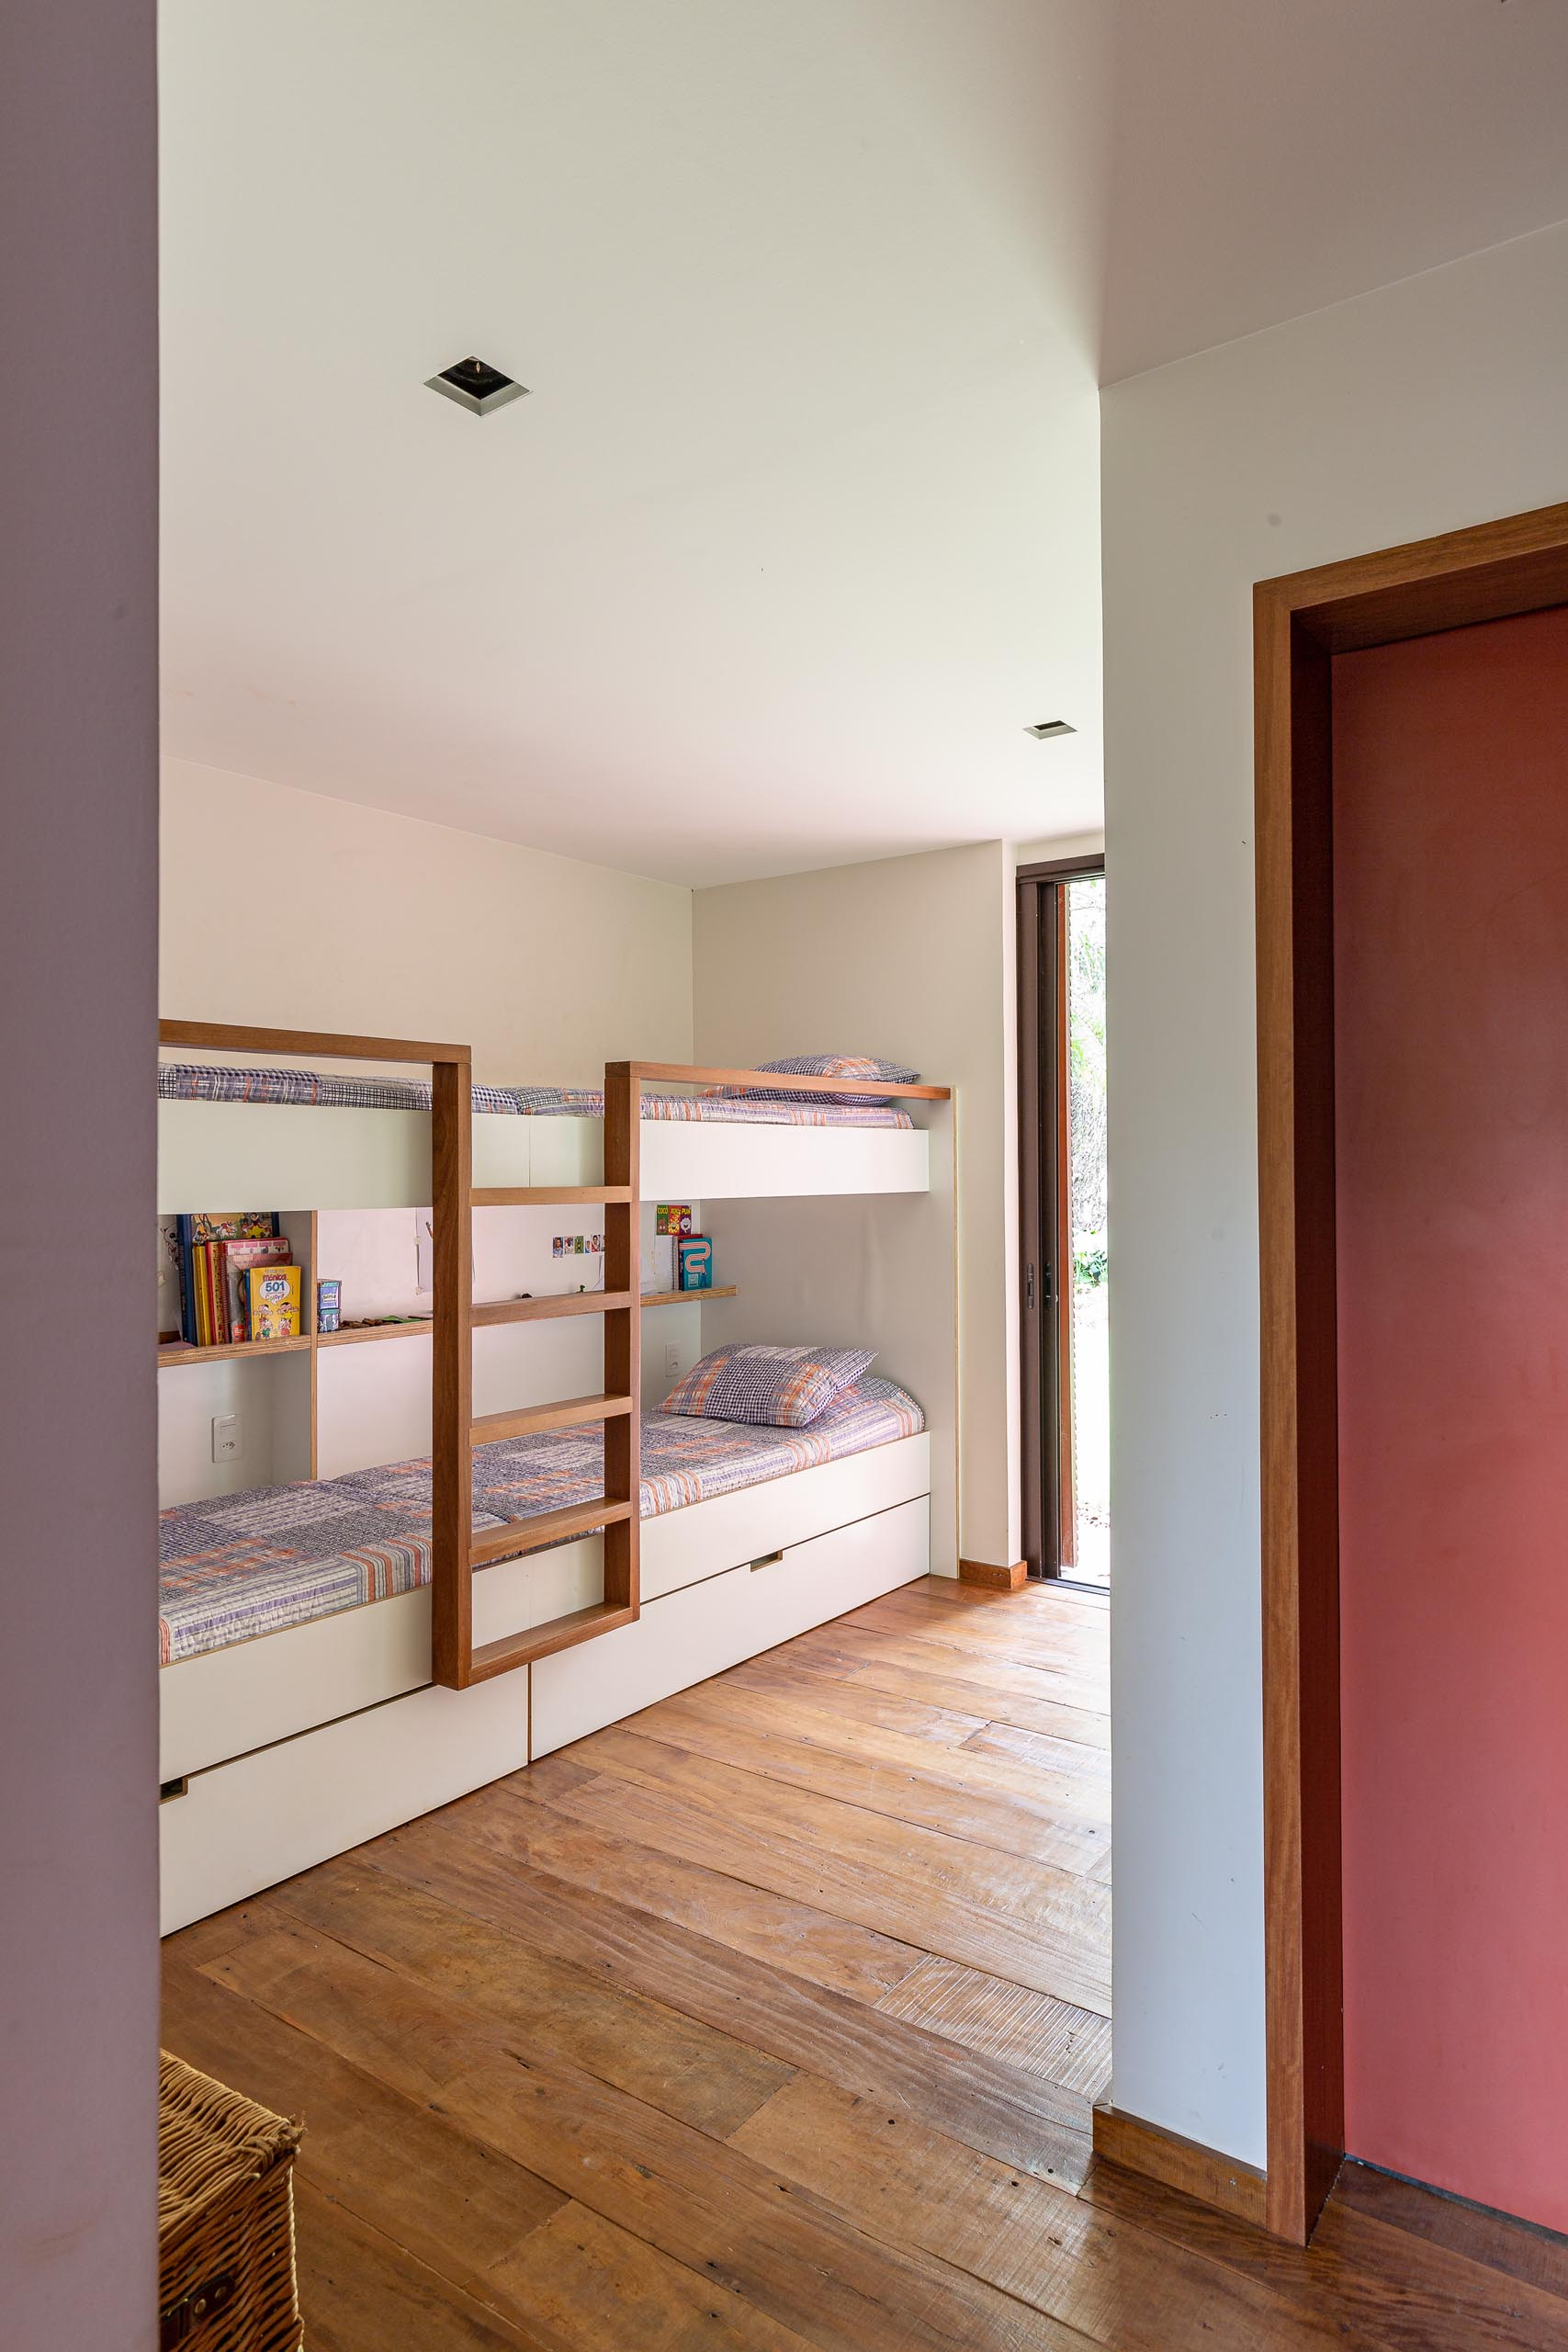 In this modern bedroom there's custom-built bunk beds, allowing for multiple people to sleep in the one room.